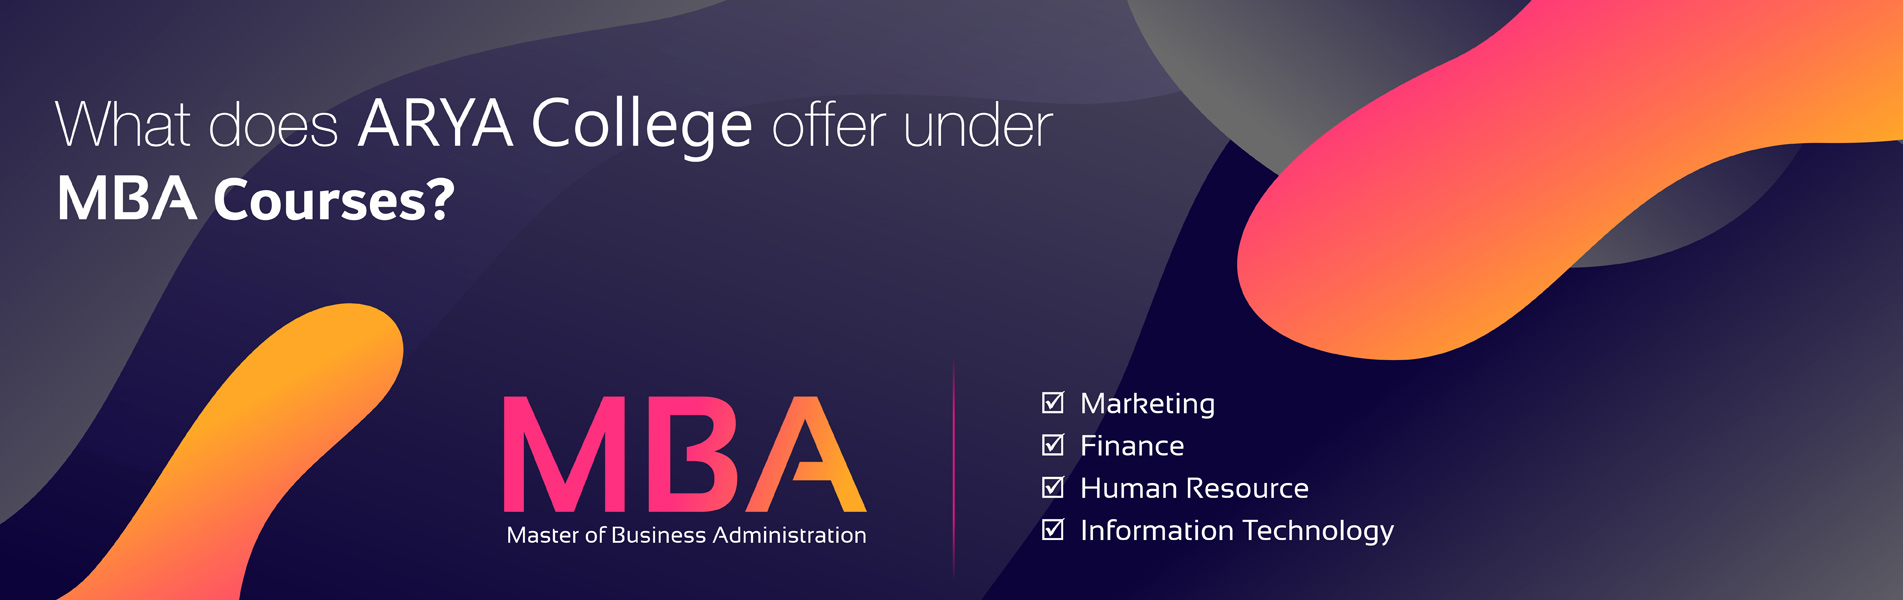 What-does-Arya-College-offer-under-MBA-courses